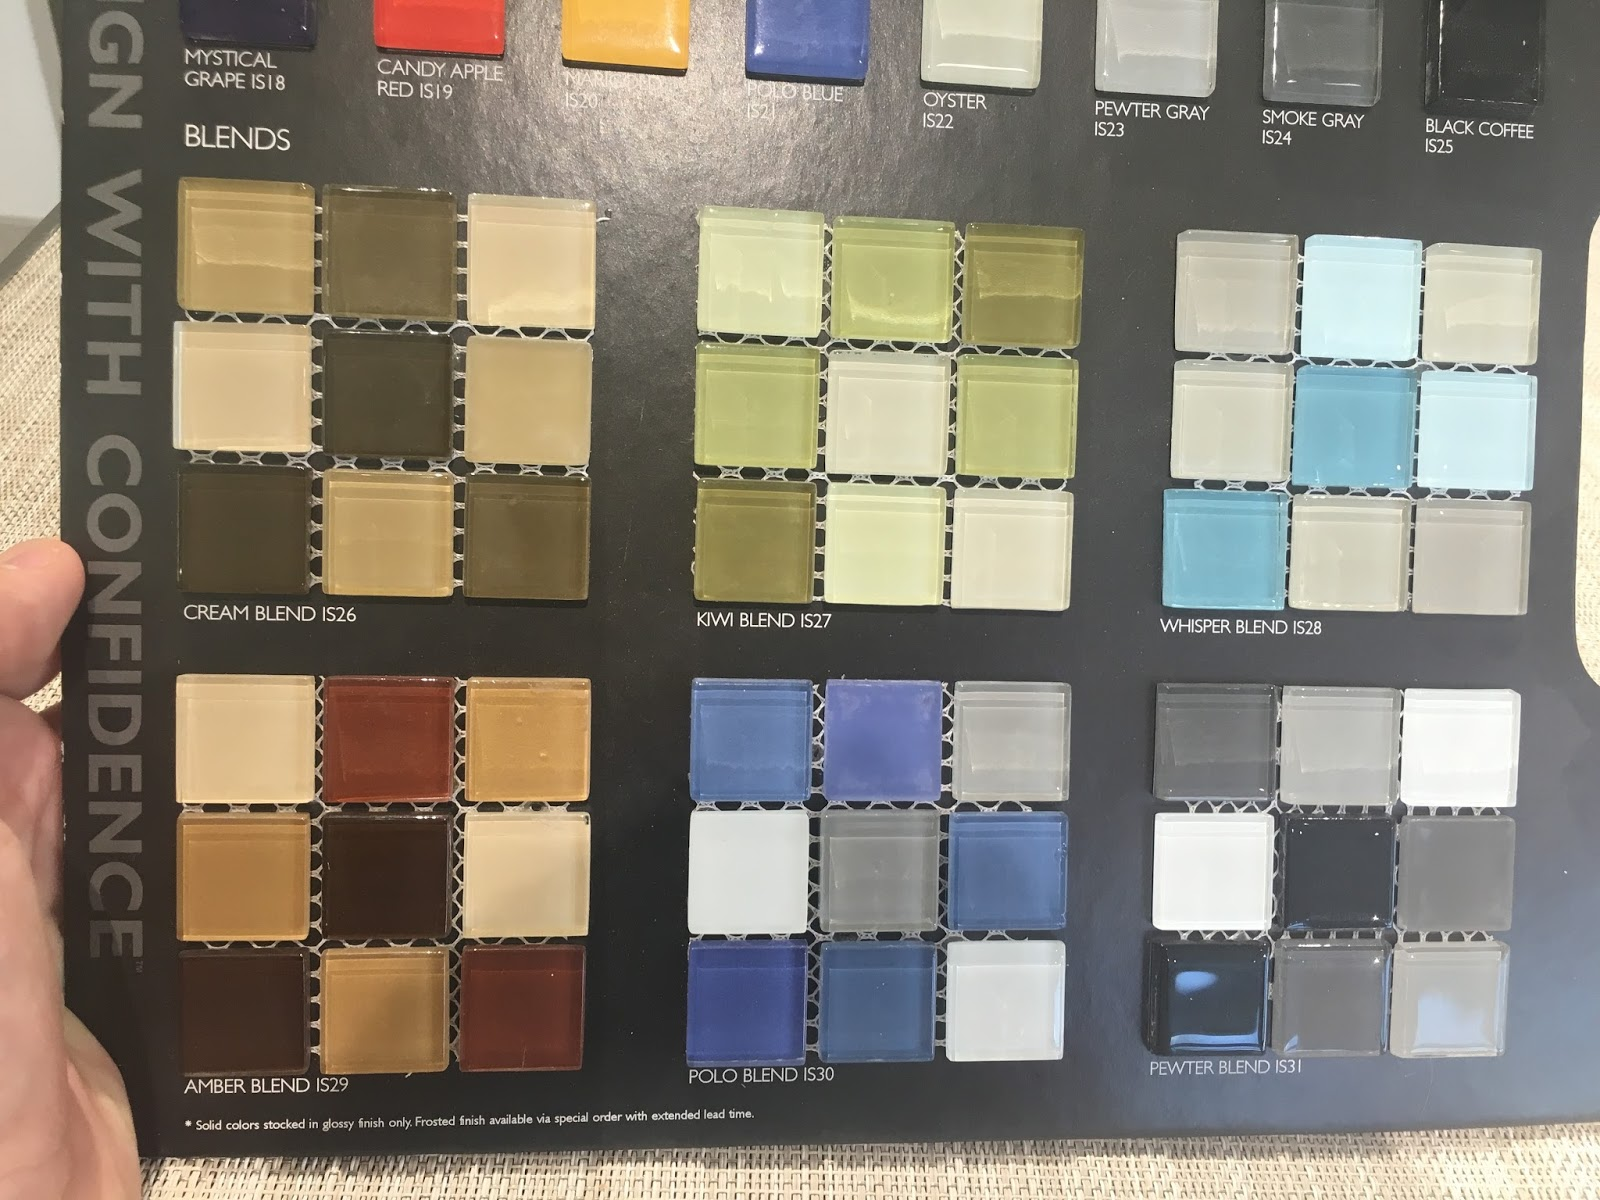 My Wood Burning Pizza Oven Tile Color Options For The New Pizza Oven - Daltile retailers